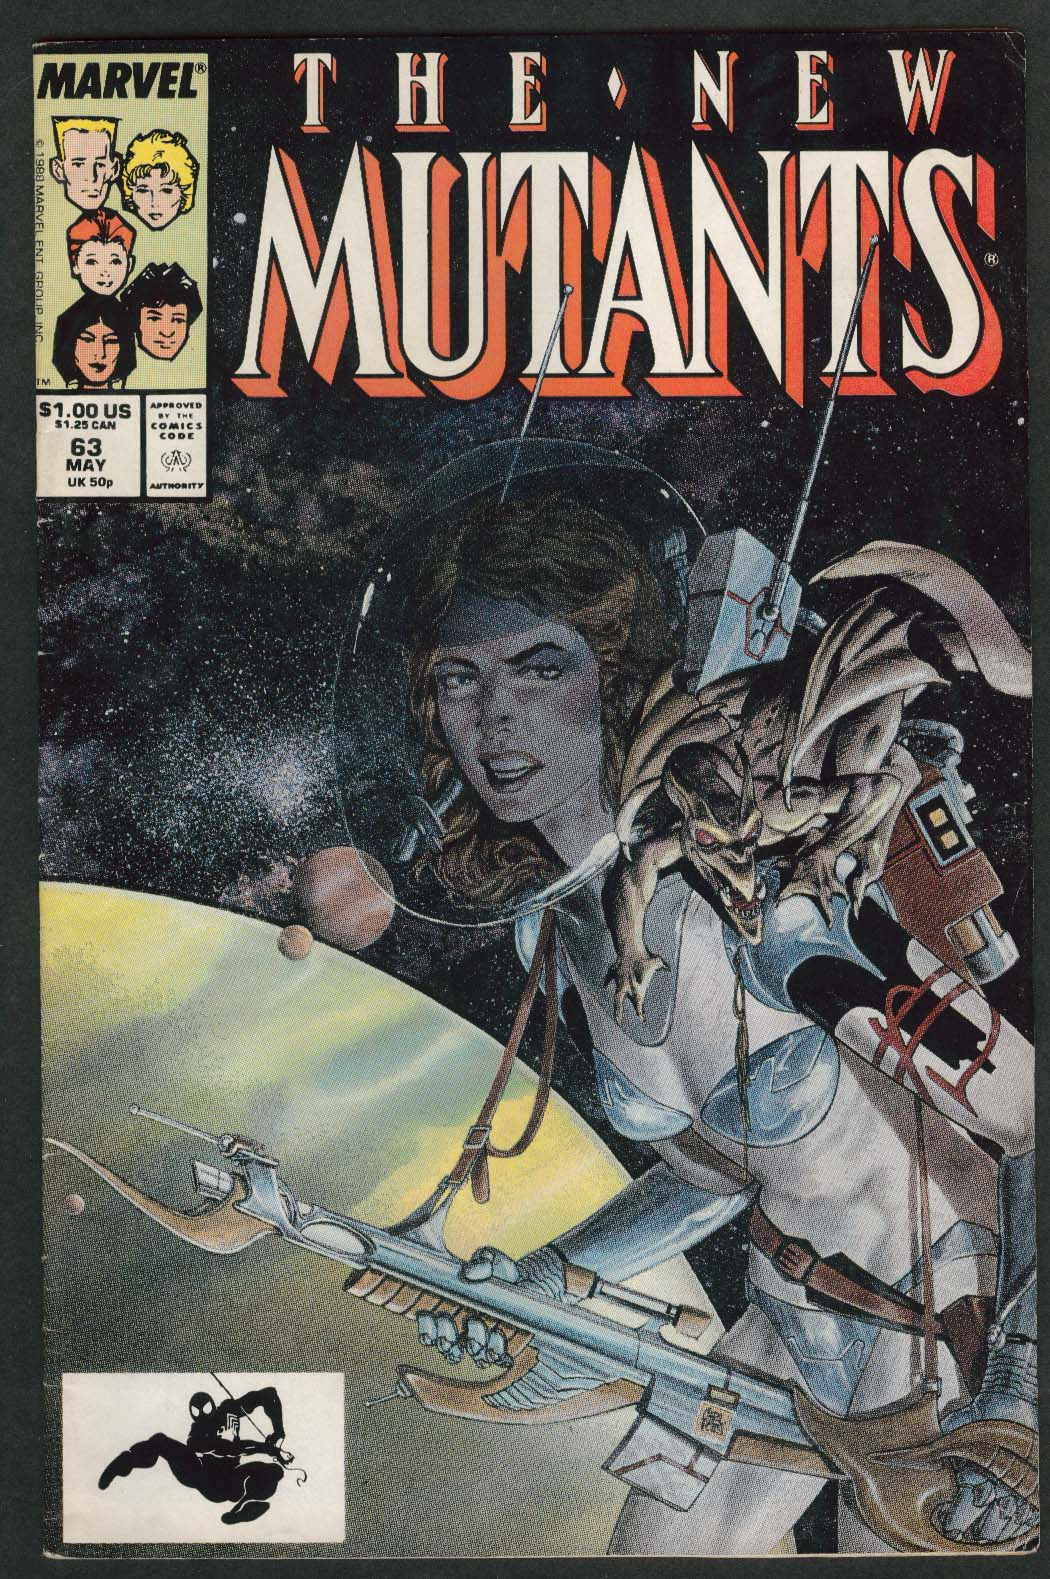 NEW MUTANTS #63 Marvel comic book 5 1988